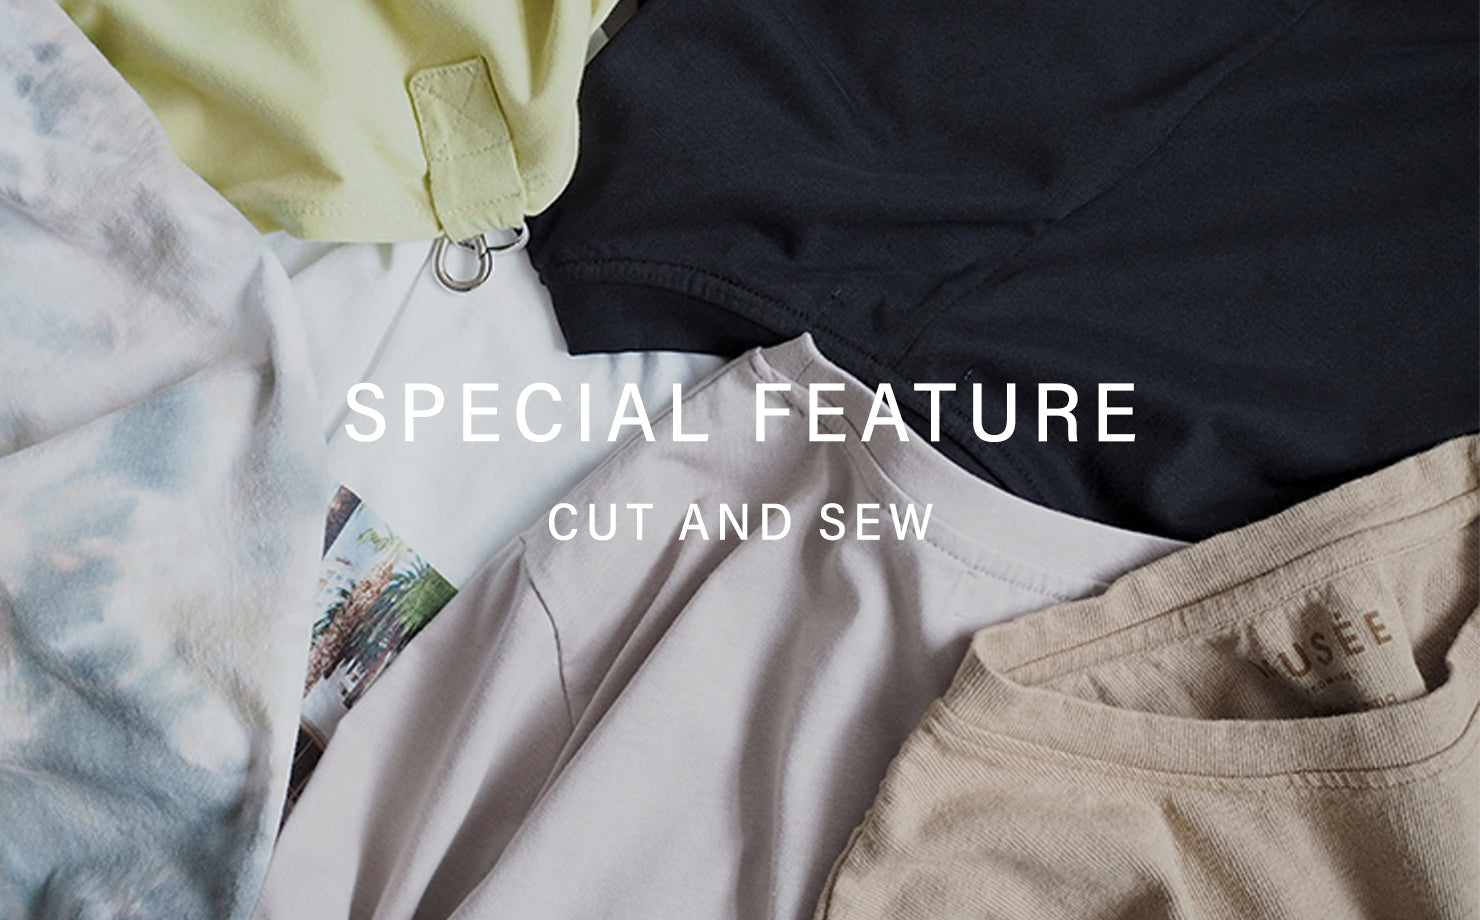 SPECIAL FEATURE CUT AND SEW